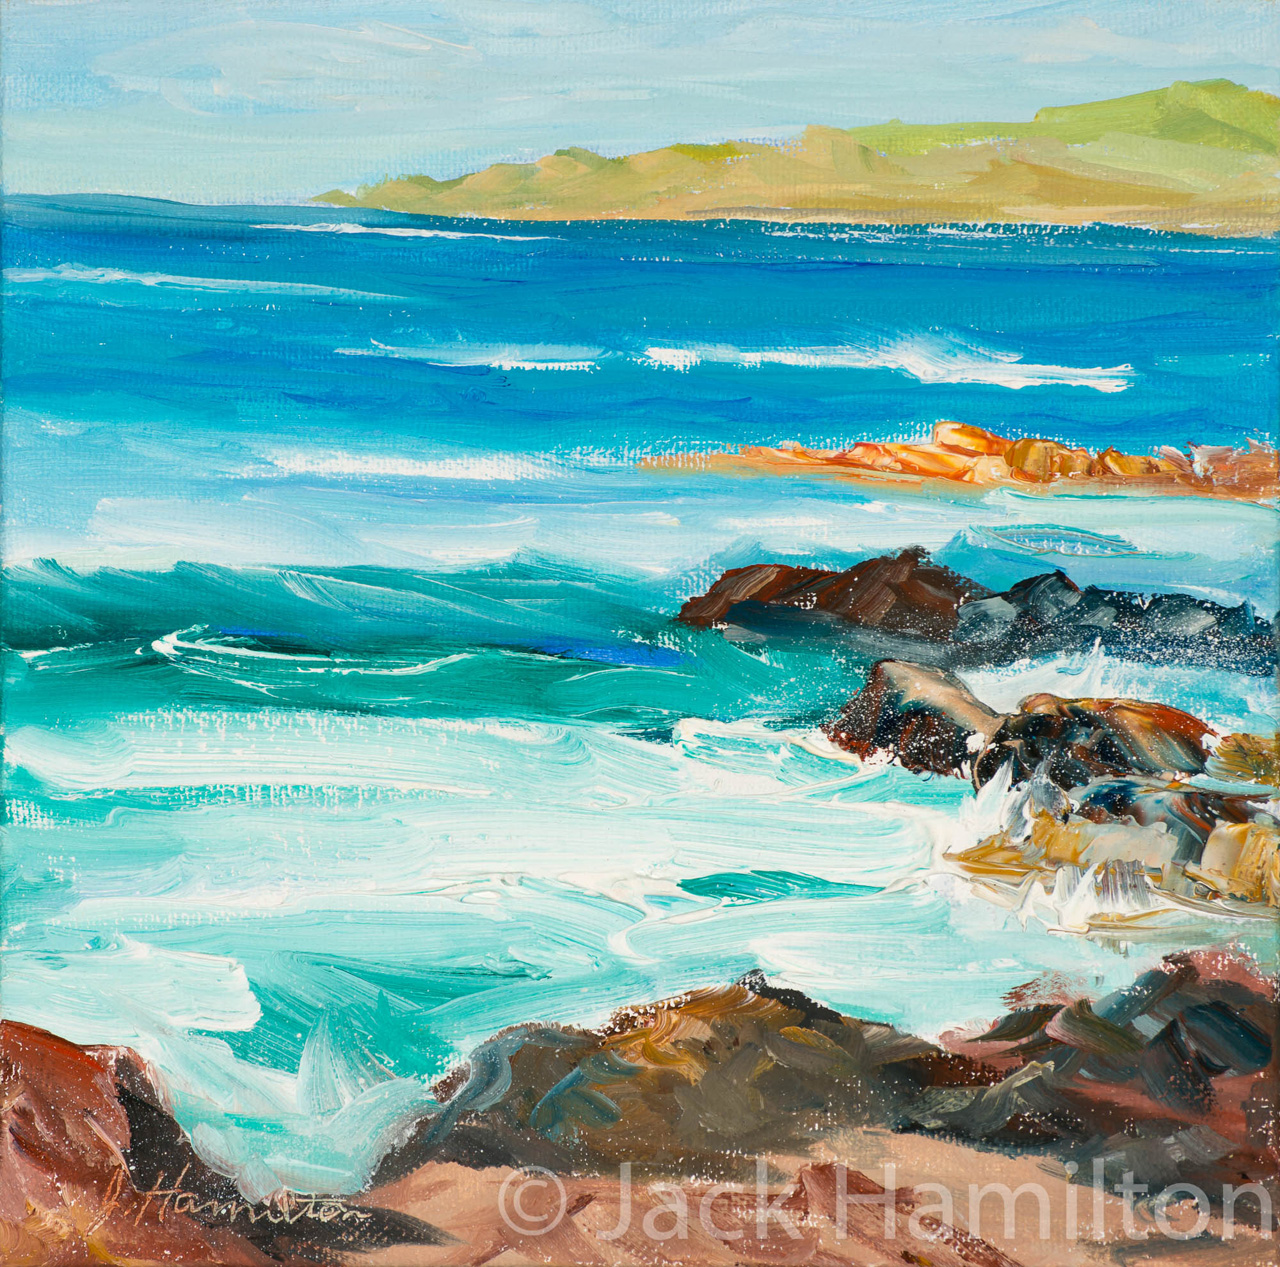 Hookipa Crashing Waves by Jack Hamilton oil on canvas